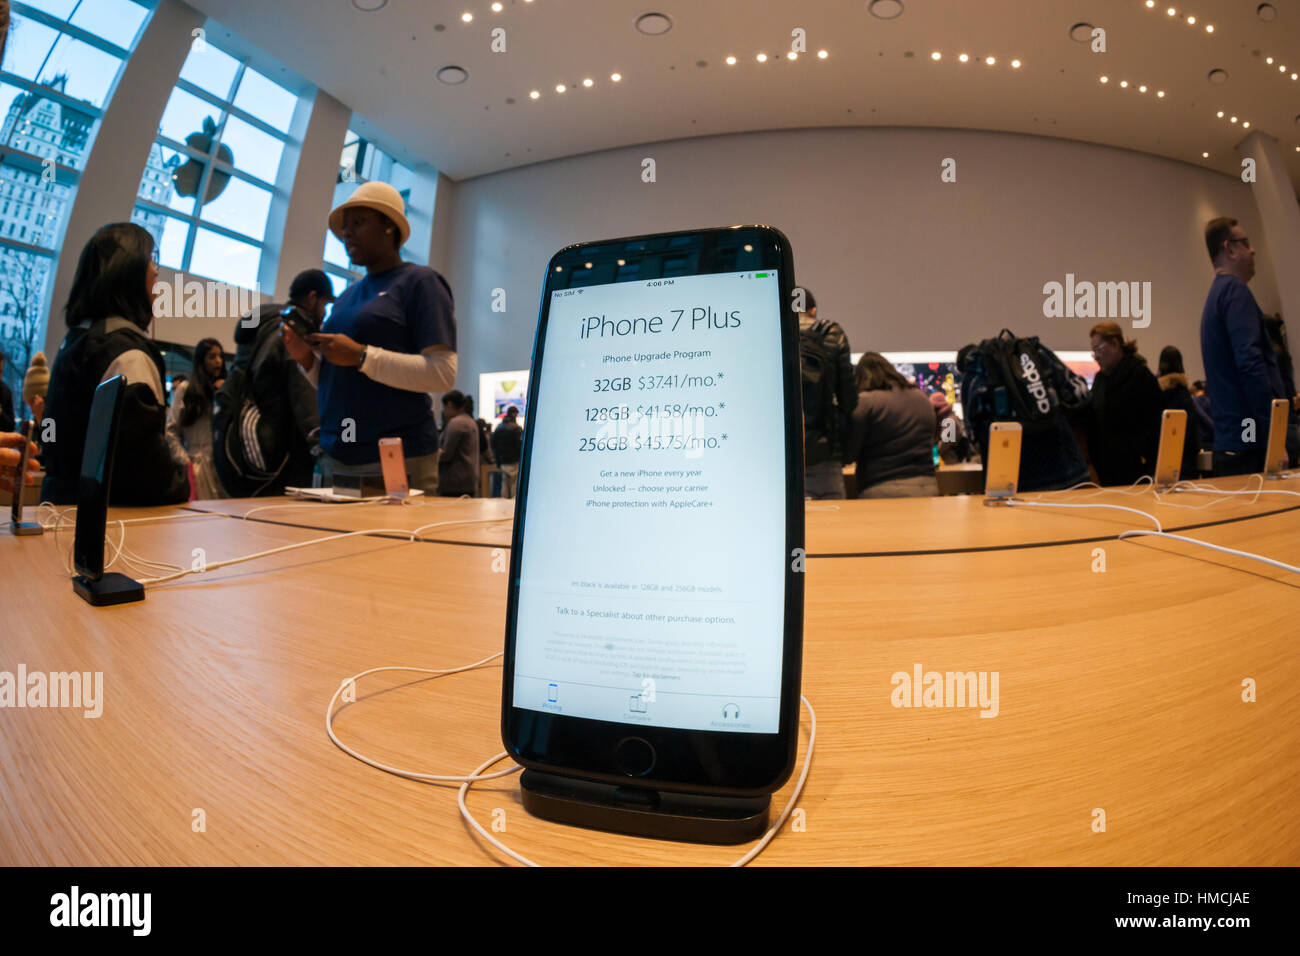 An iPhone 7 Plus in the temporary Apple store on Fifth